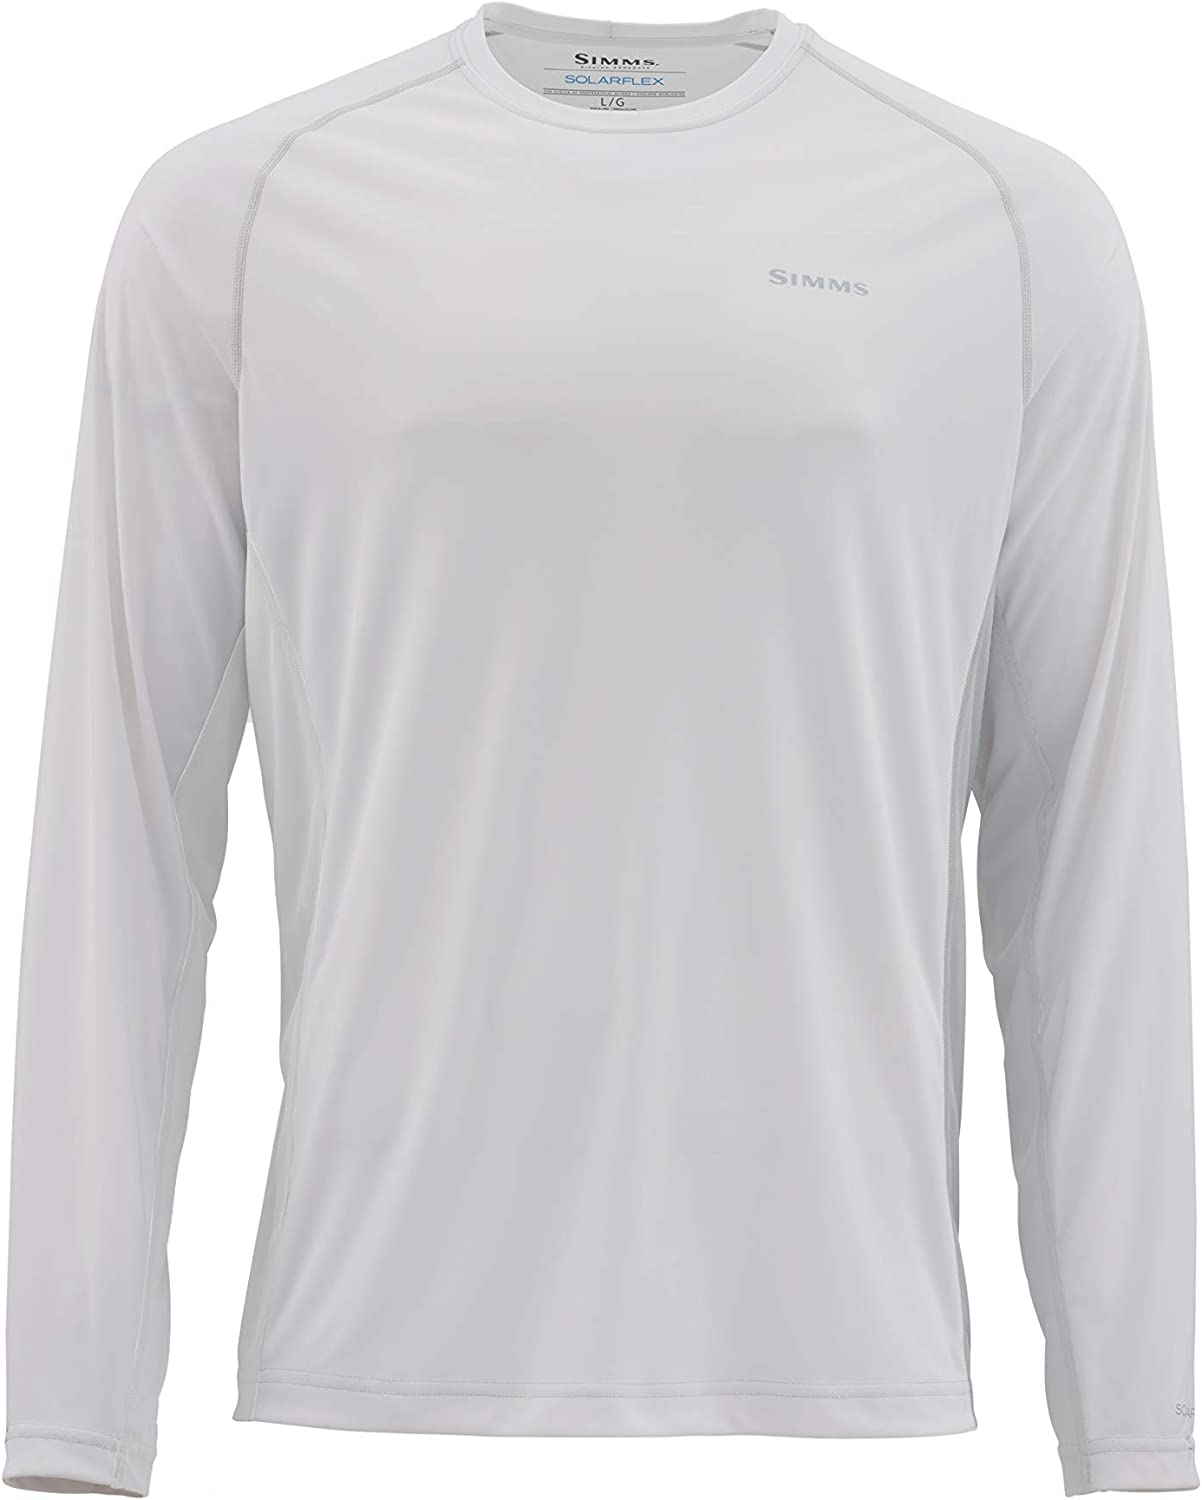 Simms Solarflex UPF 50+ At the price of surprise Limited Special Price Crewneck Fishing Sleeve Long Shirt